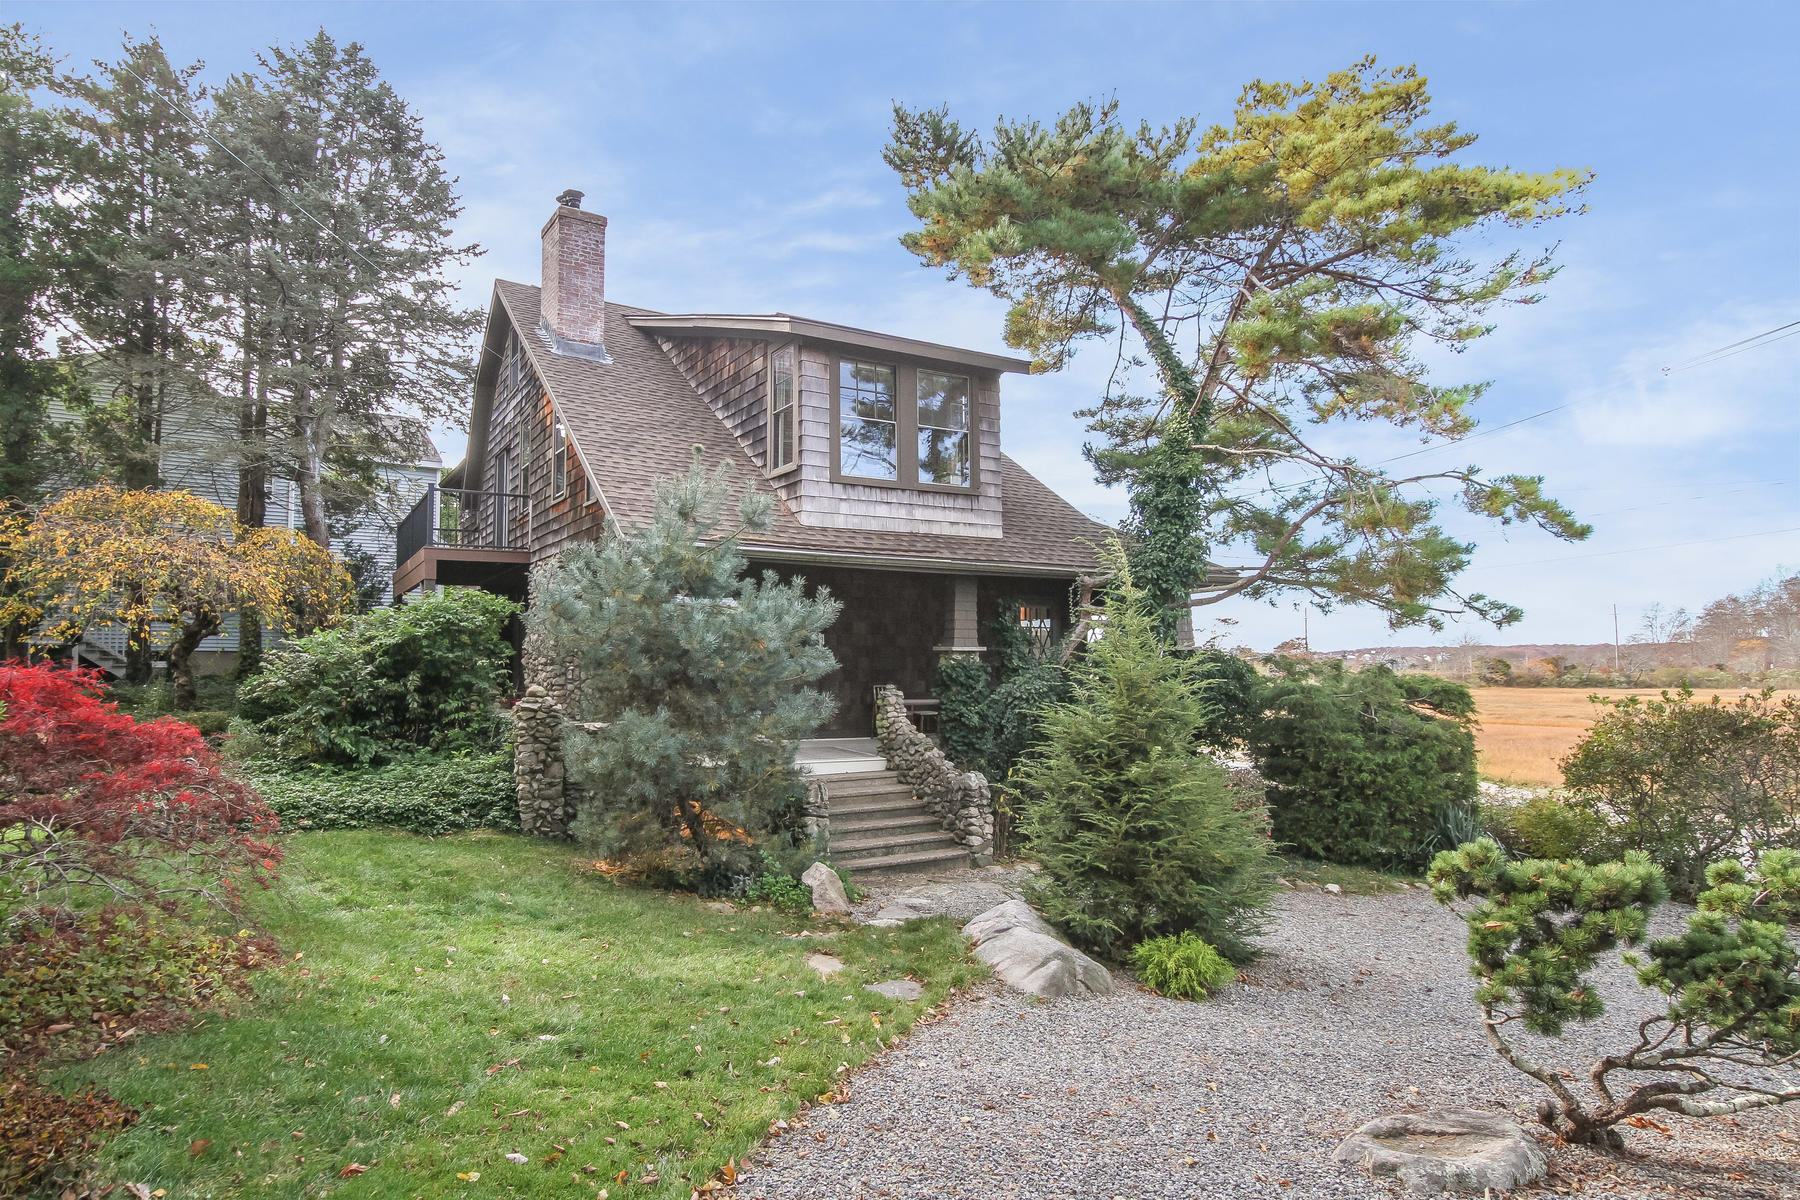 Single Family Homes for Sale at Classic Shingle and Stone Craftsman Home 9 Cross Street Groton, Connecticut 06340 United States